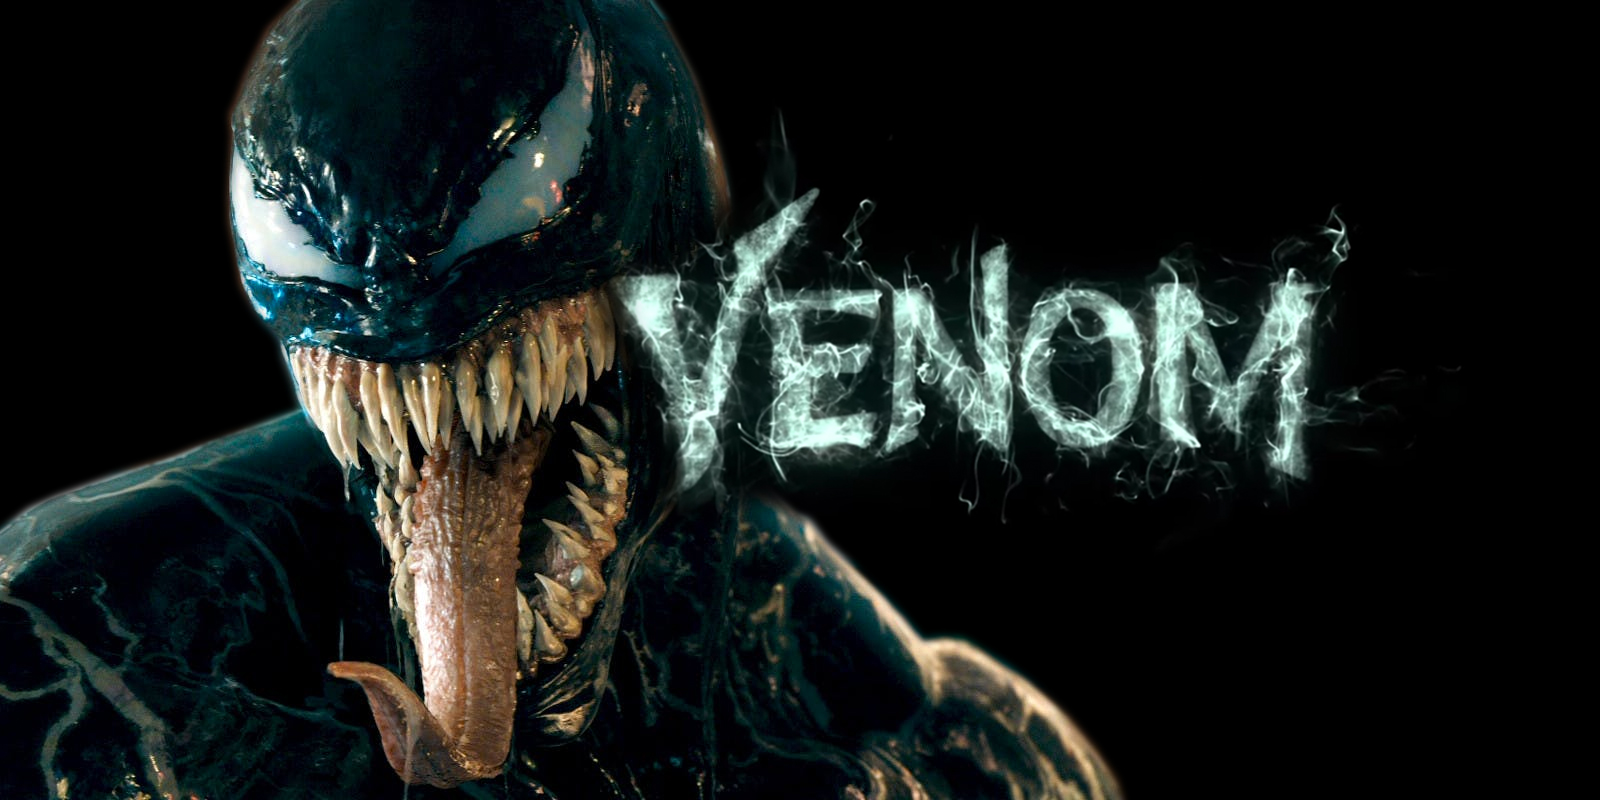 https://screenrant.com/wp-content/uploads/2018/04/Venom-Movie.jpg